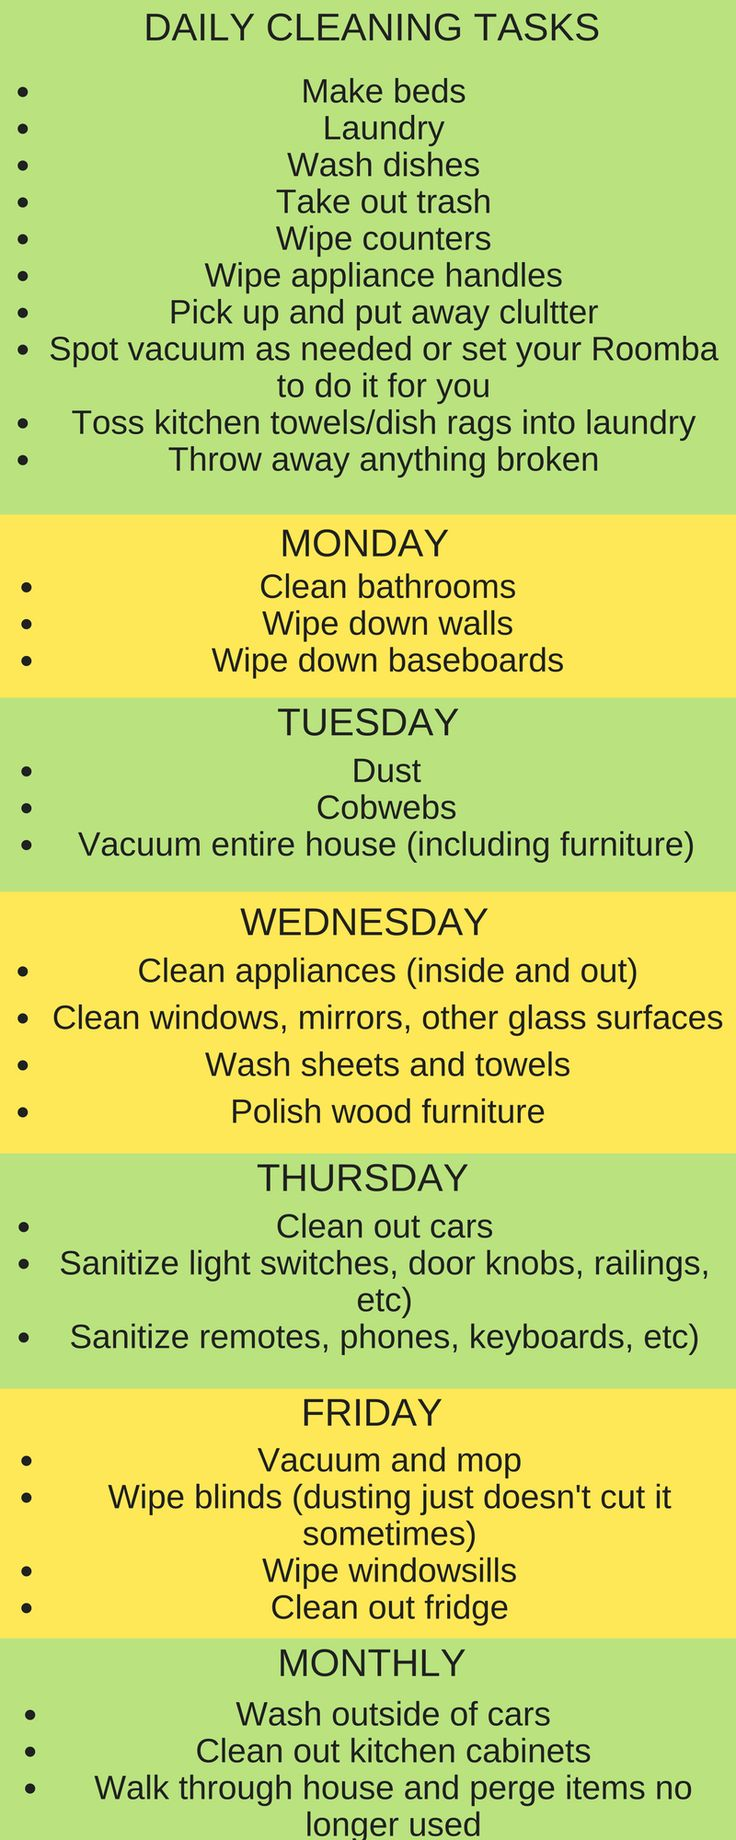 Happy 2017! Back to the grind with a cleaning schedule